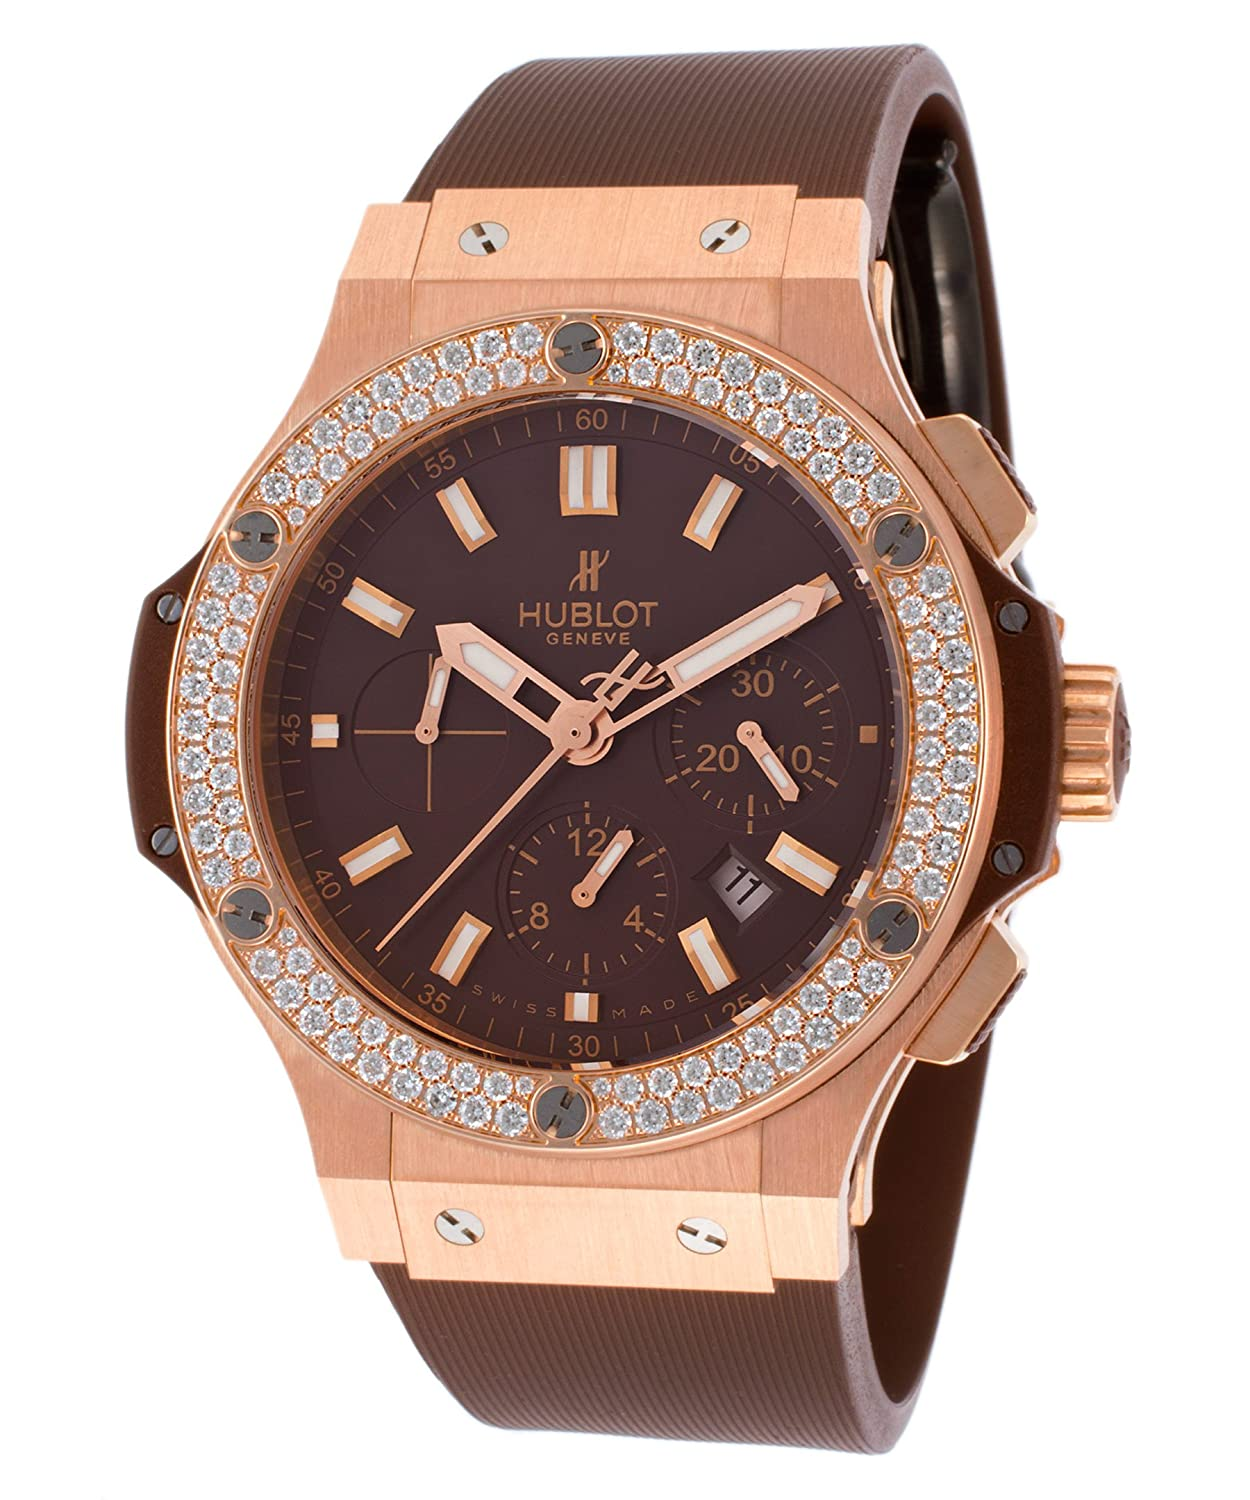 eb05944bcd63 Amazon.com  Hublot Men s Big Bang Automatic Chronograph Diamond Brown  Rubber  Watches